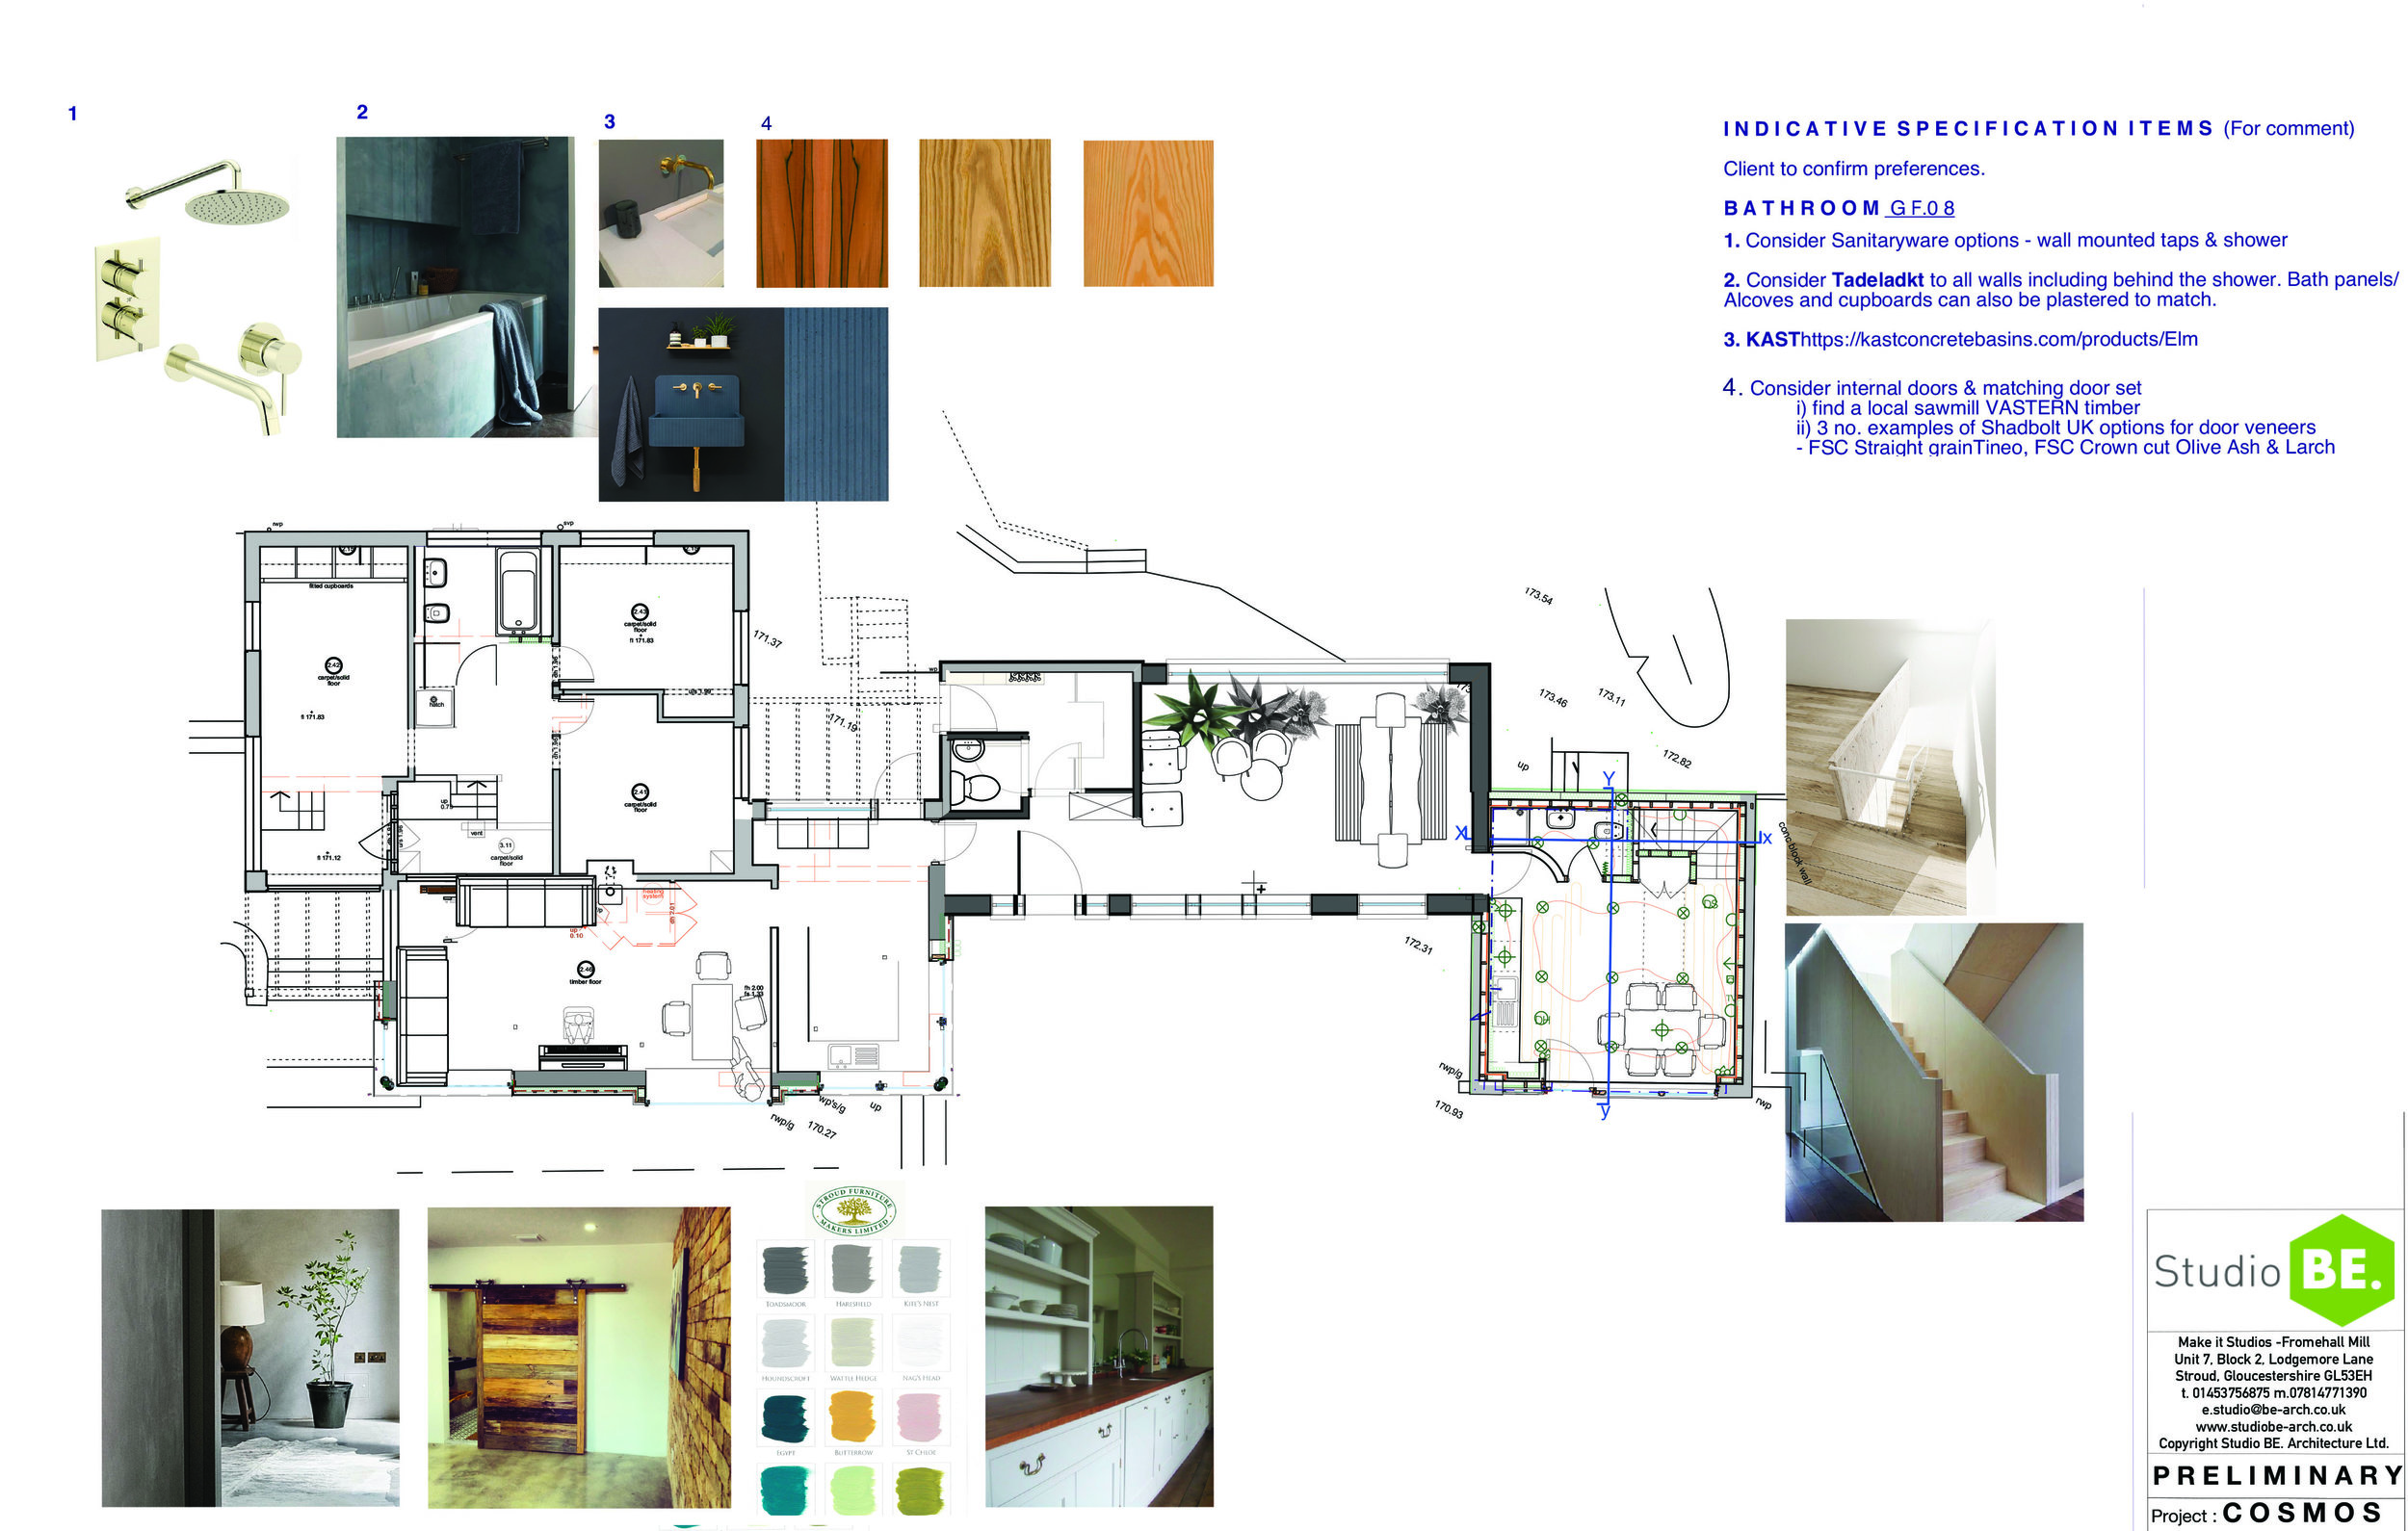 Proposed Ground Floor plan & examples of 'Internal' fit out items for client review & discussion.